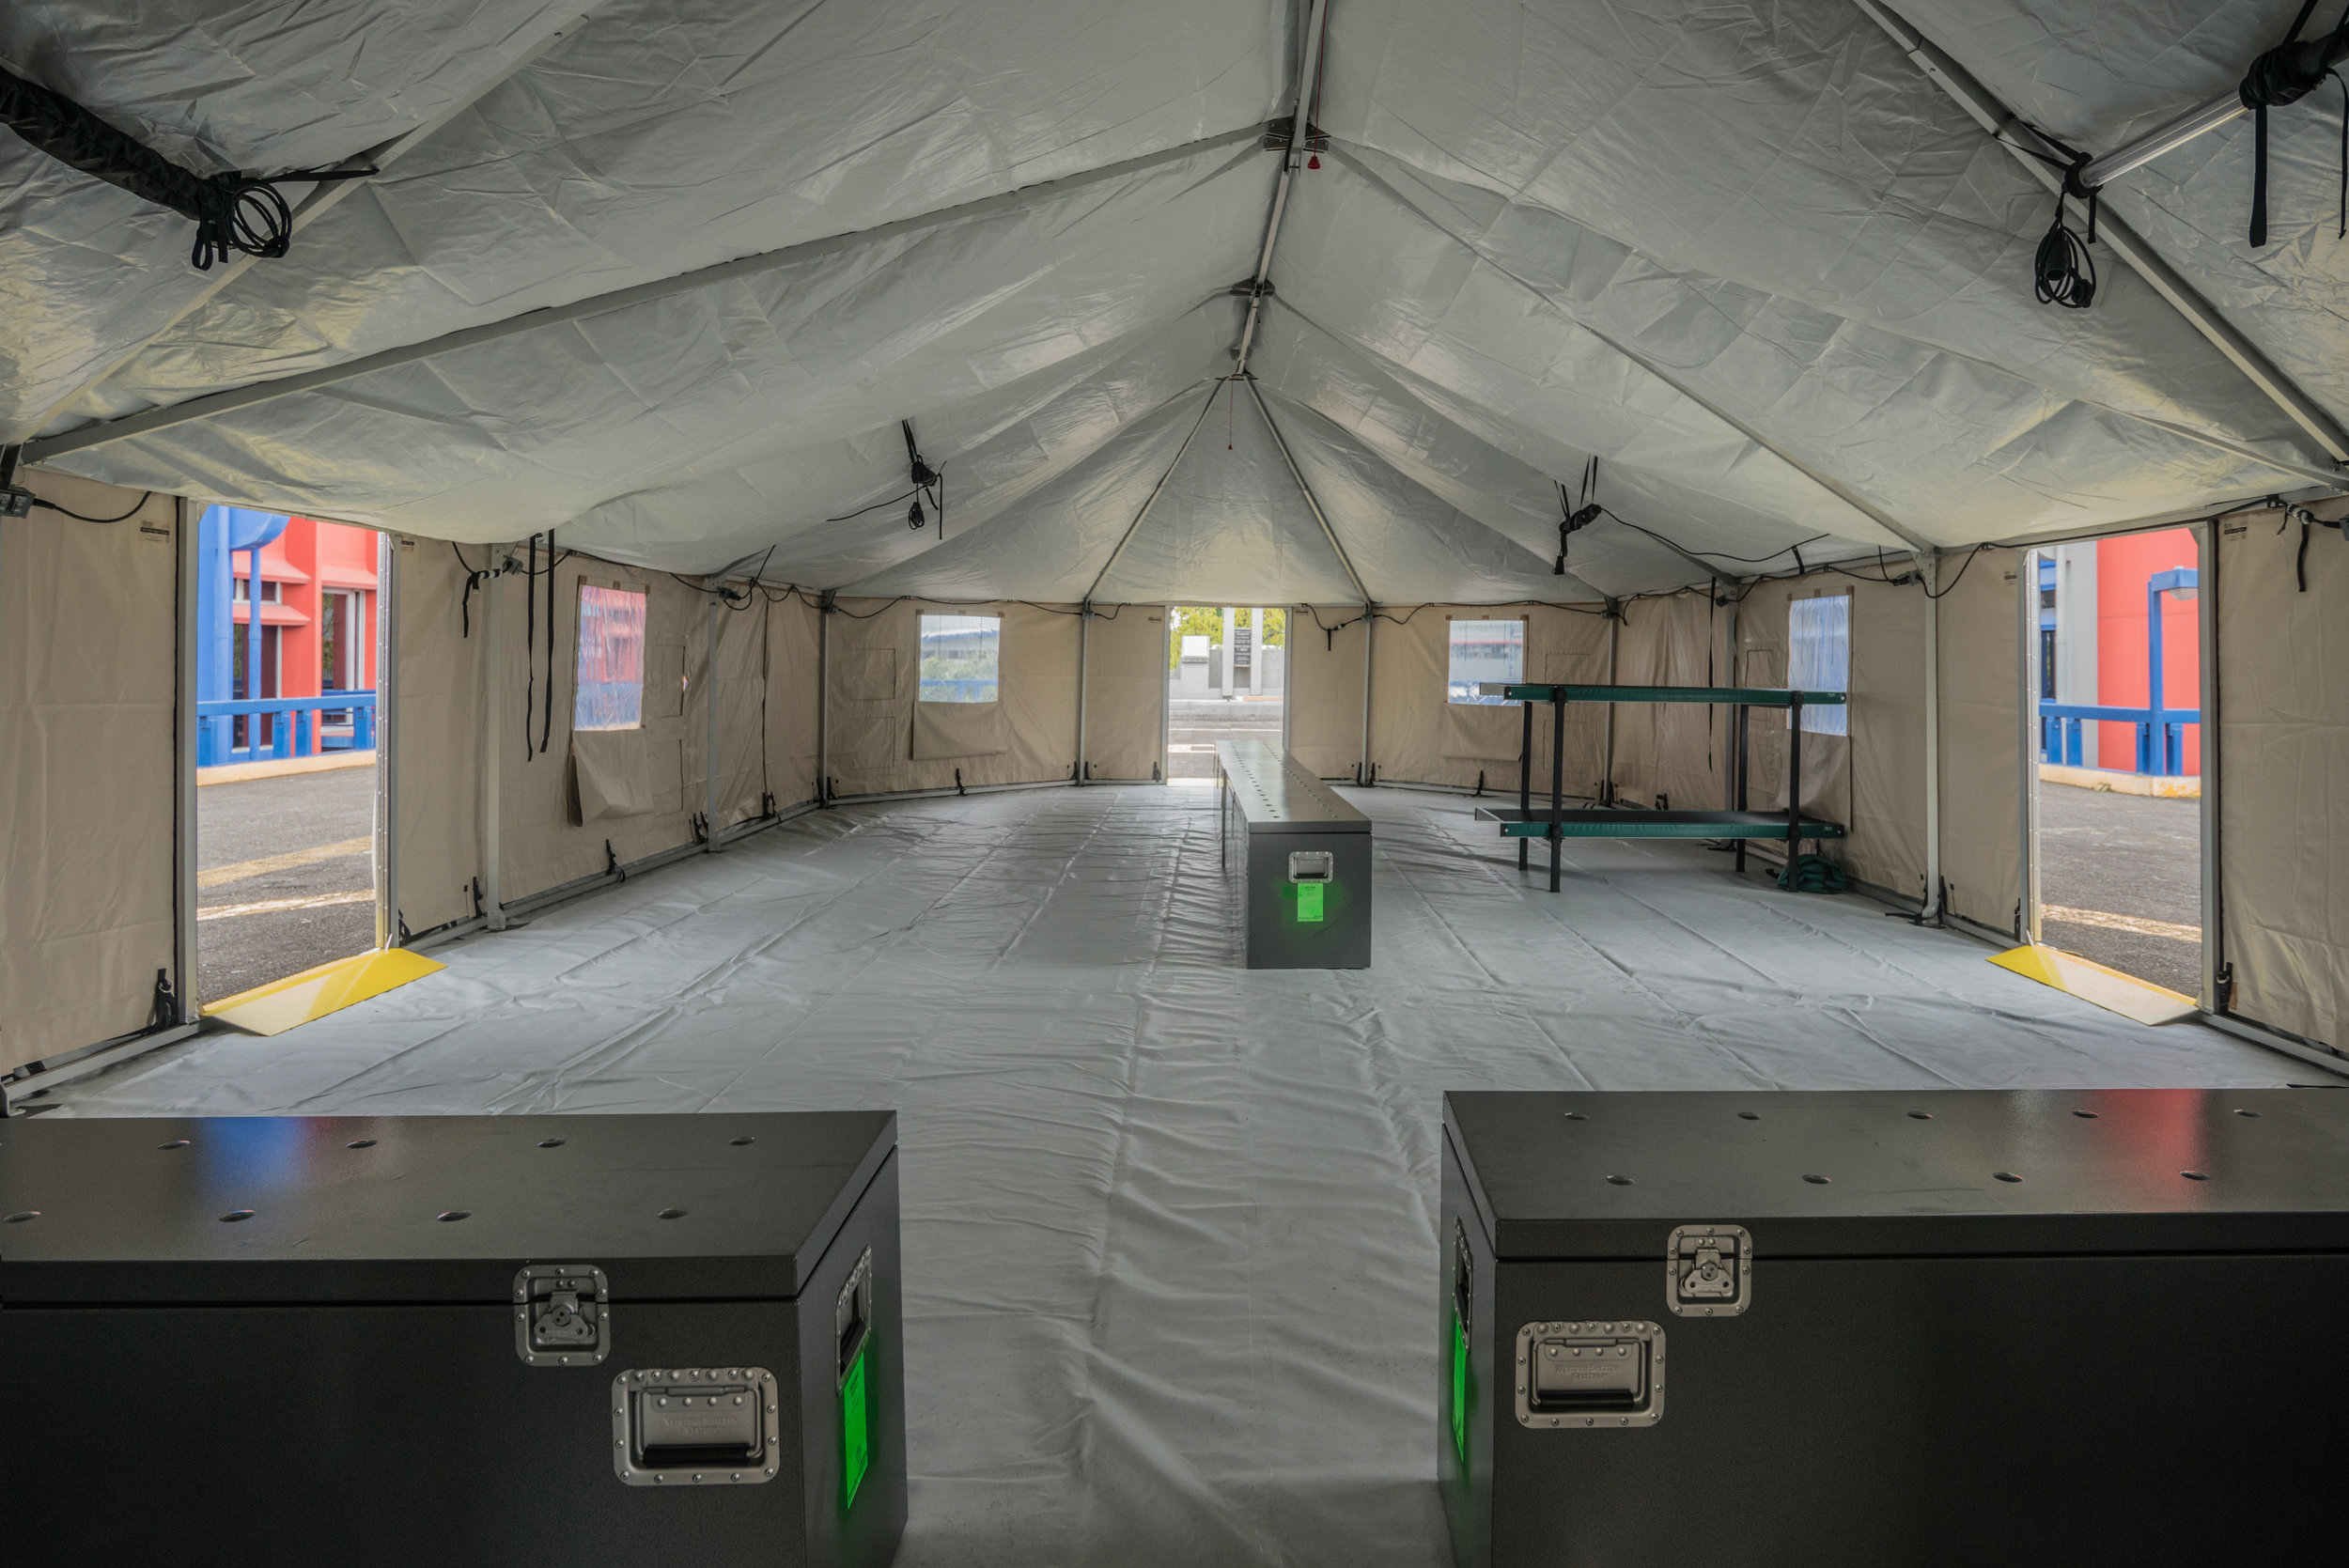 Border patrol shelter interior